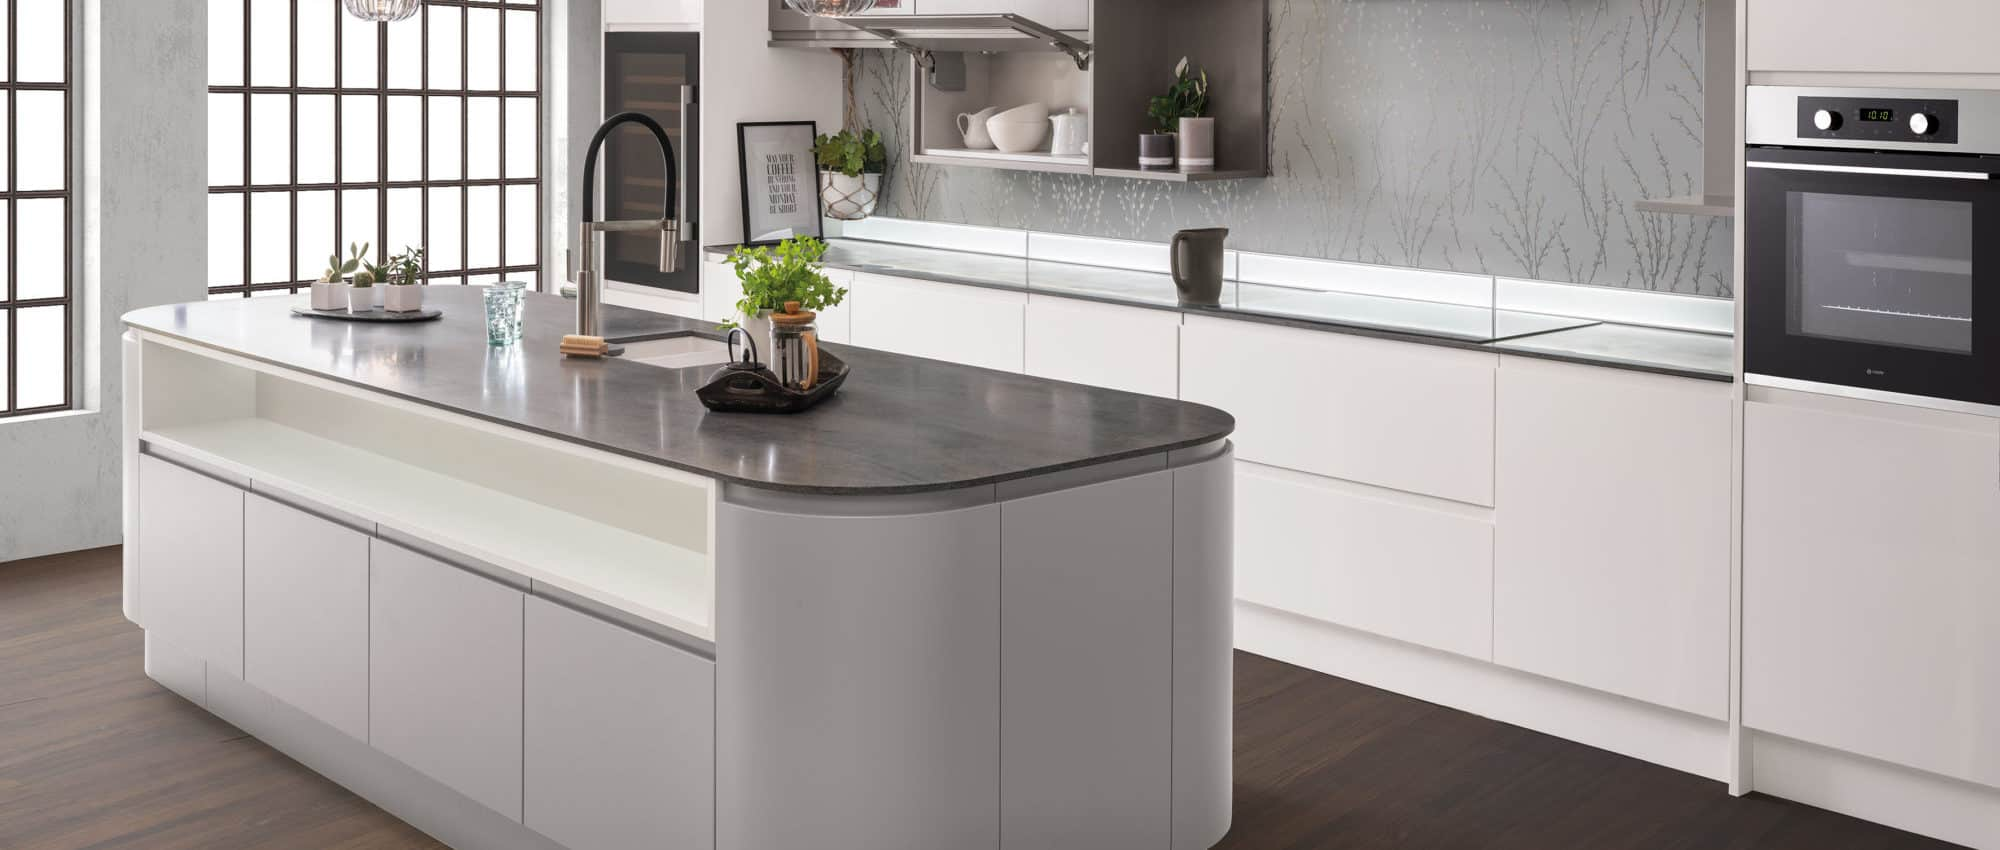 modern kitchen design 2021 curved kitchen island